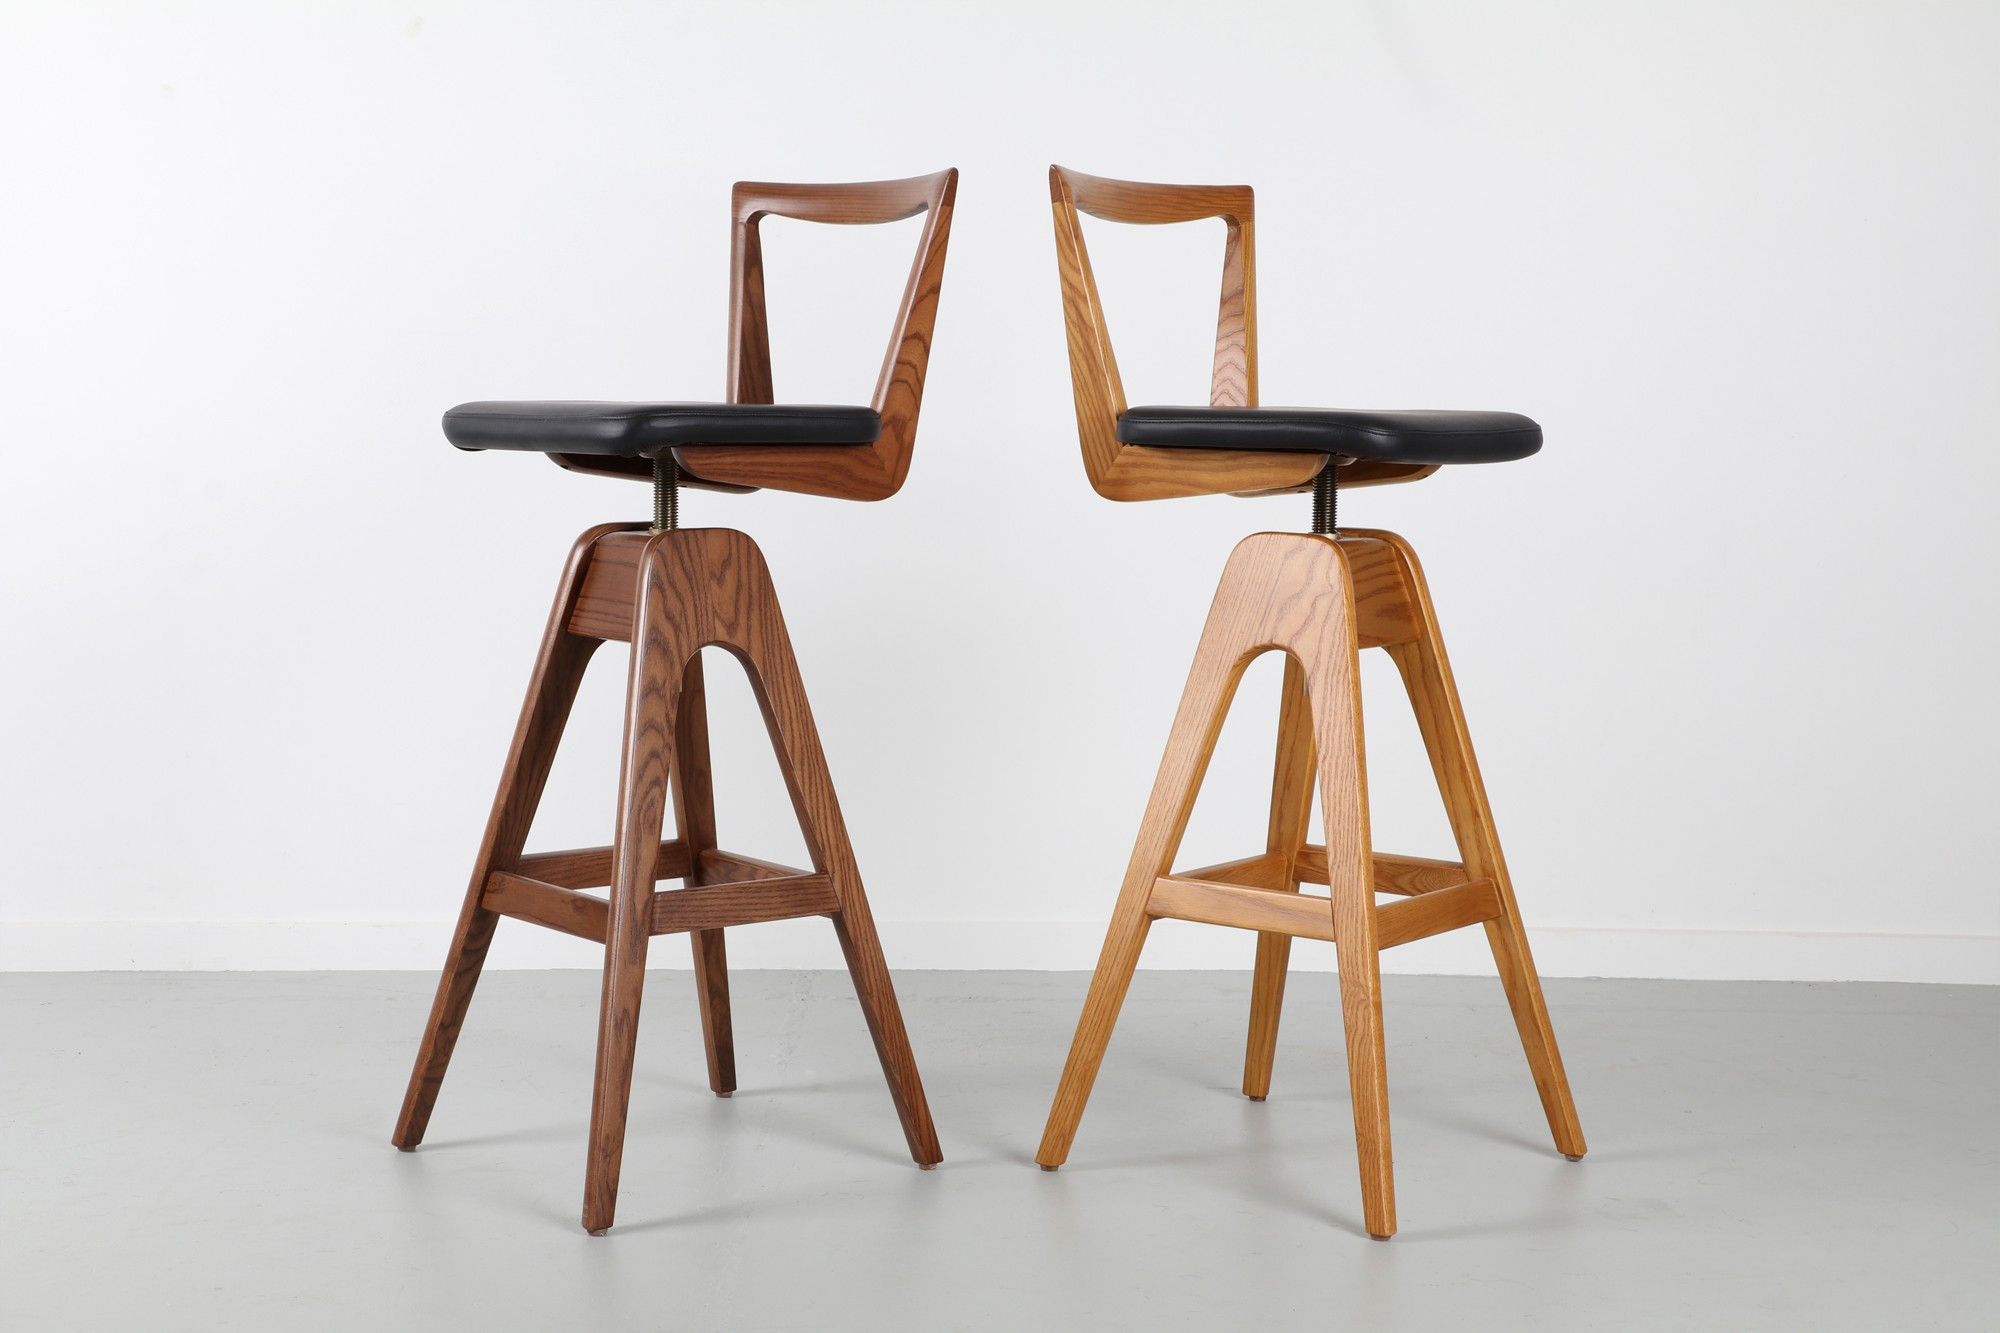 case study planter nz th brown bar stools